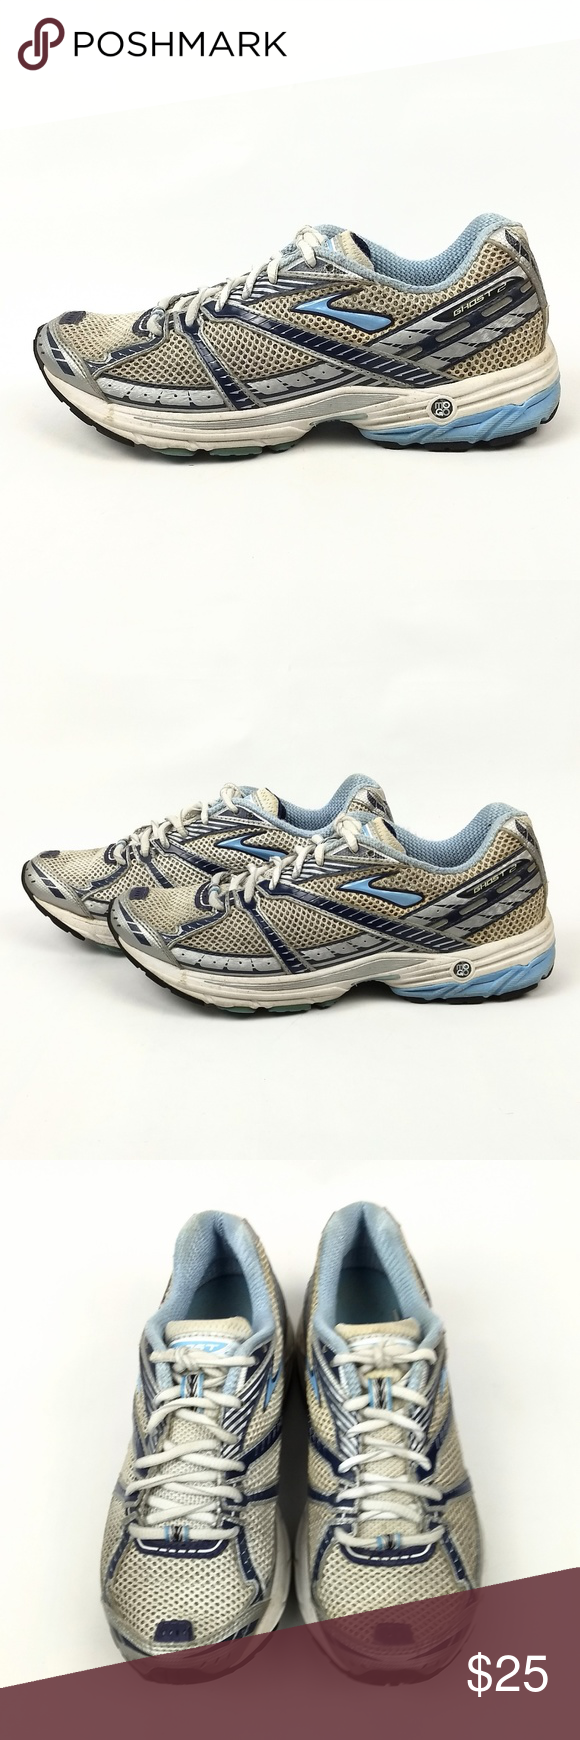 a5aba912d2326 Brooks Ghost 2 Neutral Running Shoes Size 7.5 Brooks Ghost 2 Neutral  Running Shoes Model